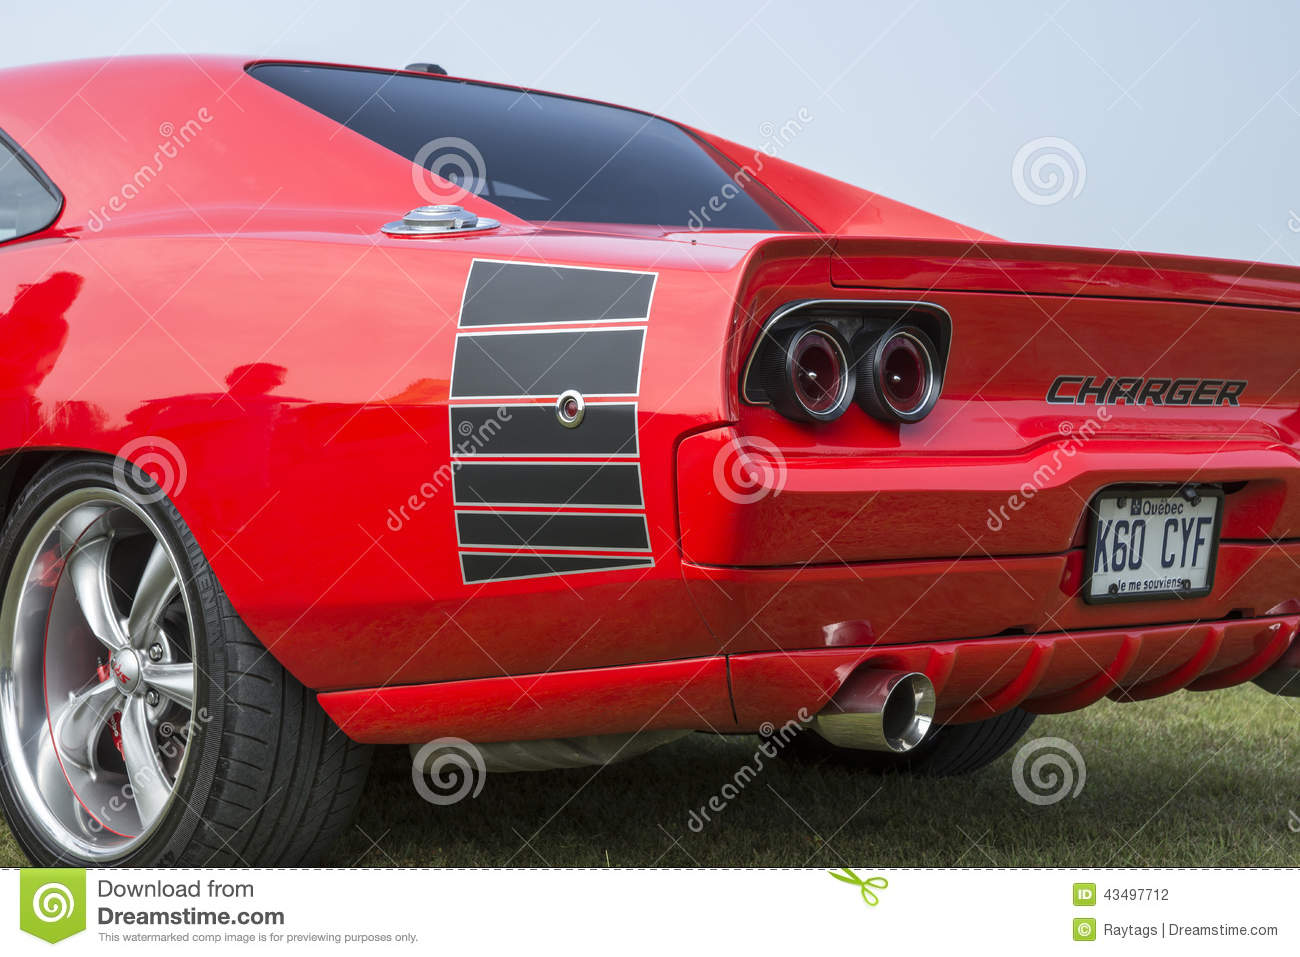 Dodge Charger Rear End Editorial Photography Image 43497712